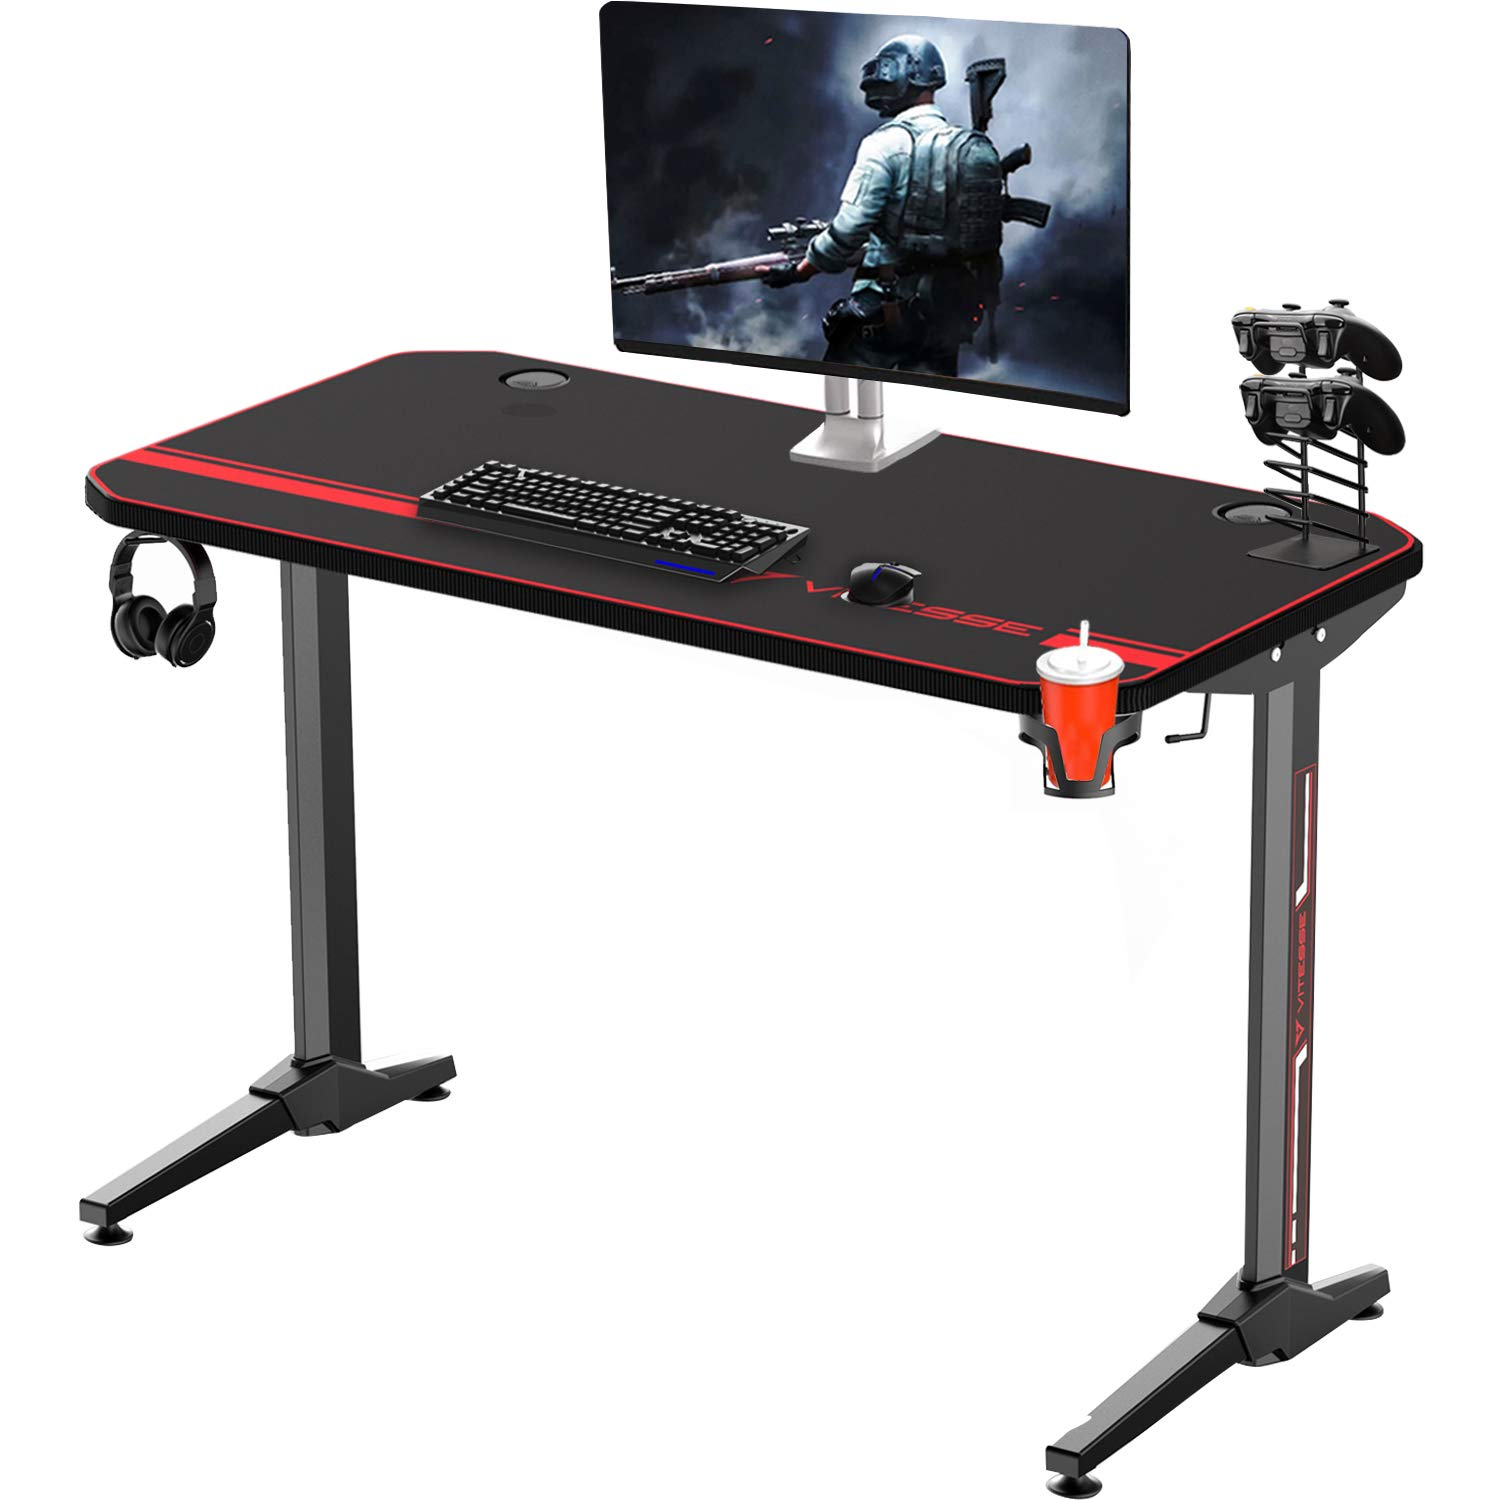 Vitesse 47 inches Gaming Desk Racing Style Computer Table with Free Mouse pad, T-Shaped Professional Gamer Workstation PC Office Desk with Cup Holder & Headphone Hook